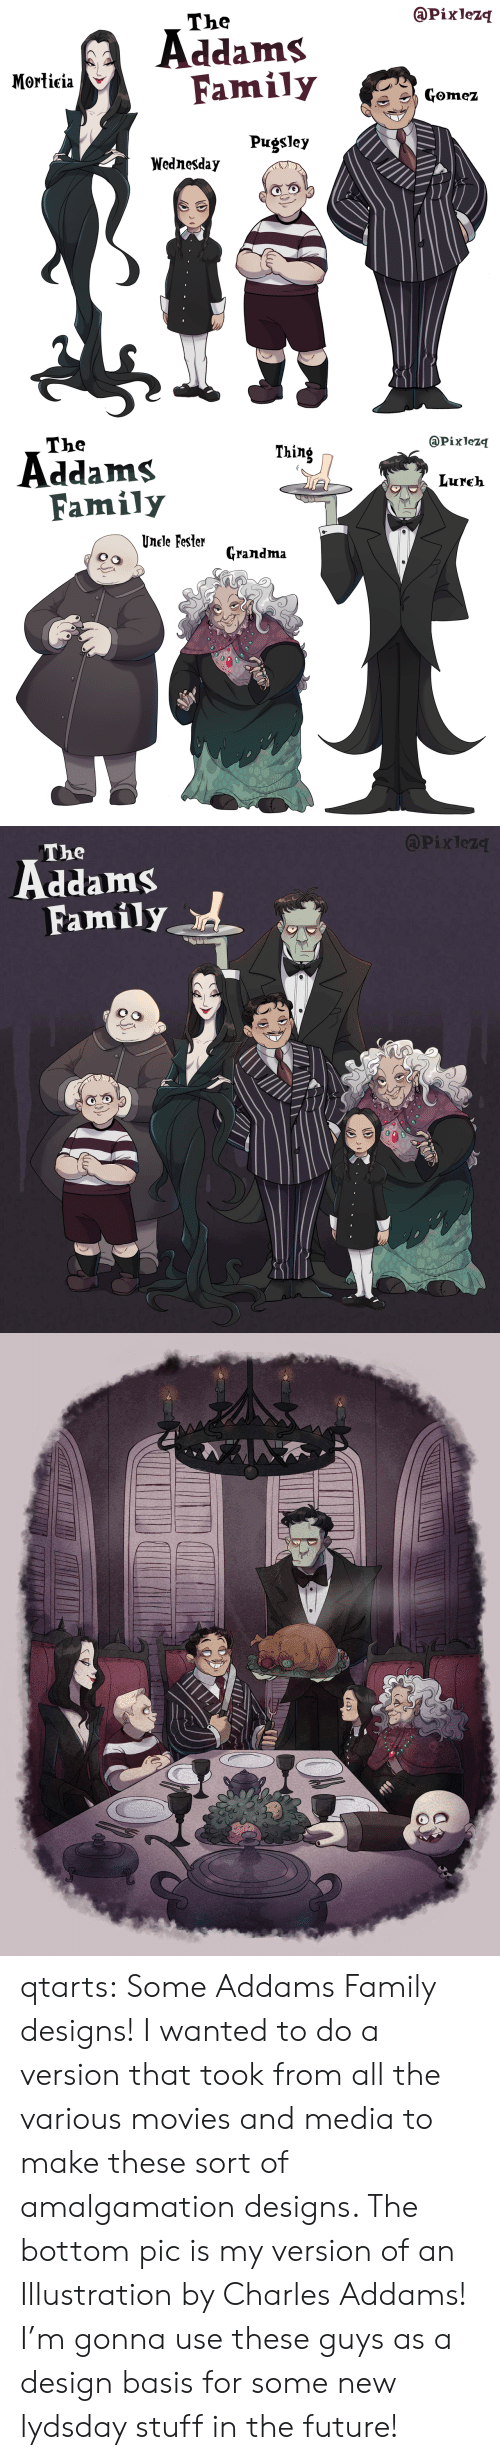 gomez: @Pixlezq  The  Addams  Family  Morticia  Gomez  Pugsley  Wednesday   @Pixlezq  The  Thing  Addams  Family  Lureh  Unele Fester  Grandma   APixlez  The  Family qtarts: Some Addams Family designs! I wanted to do a version that took from all the various movies and media to make these sort of amalgamation designs. The bottom pic is my version of an Illustration by Charles Addams! I'm gonna use these guys as a design basis for some new lydsday stuff in the future!